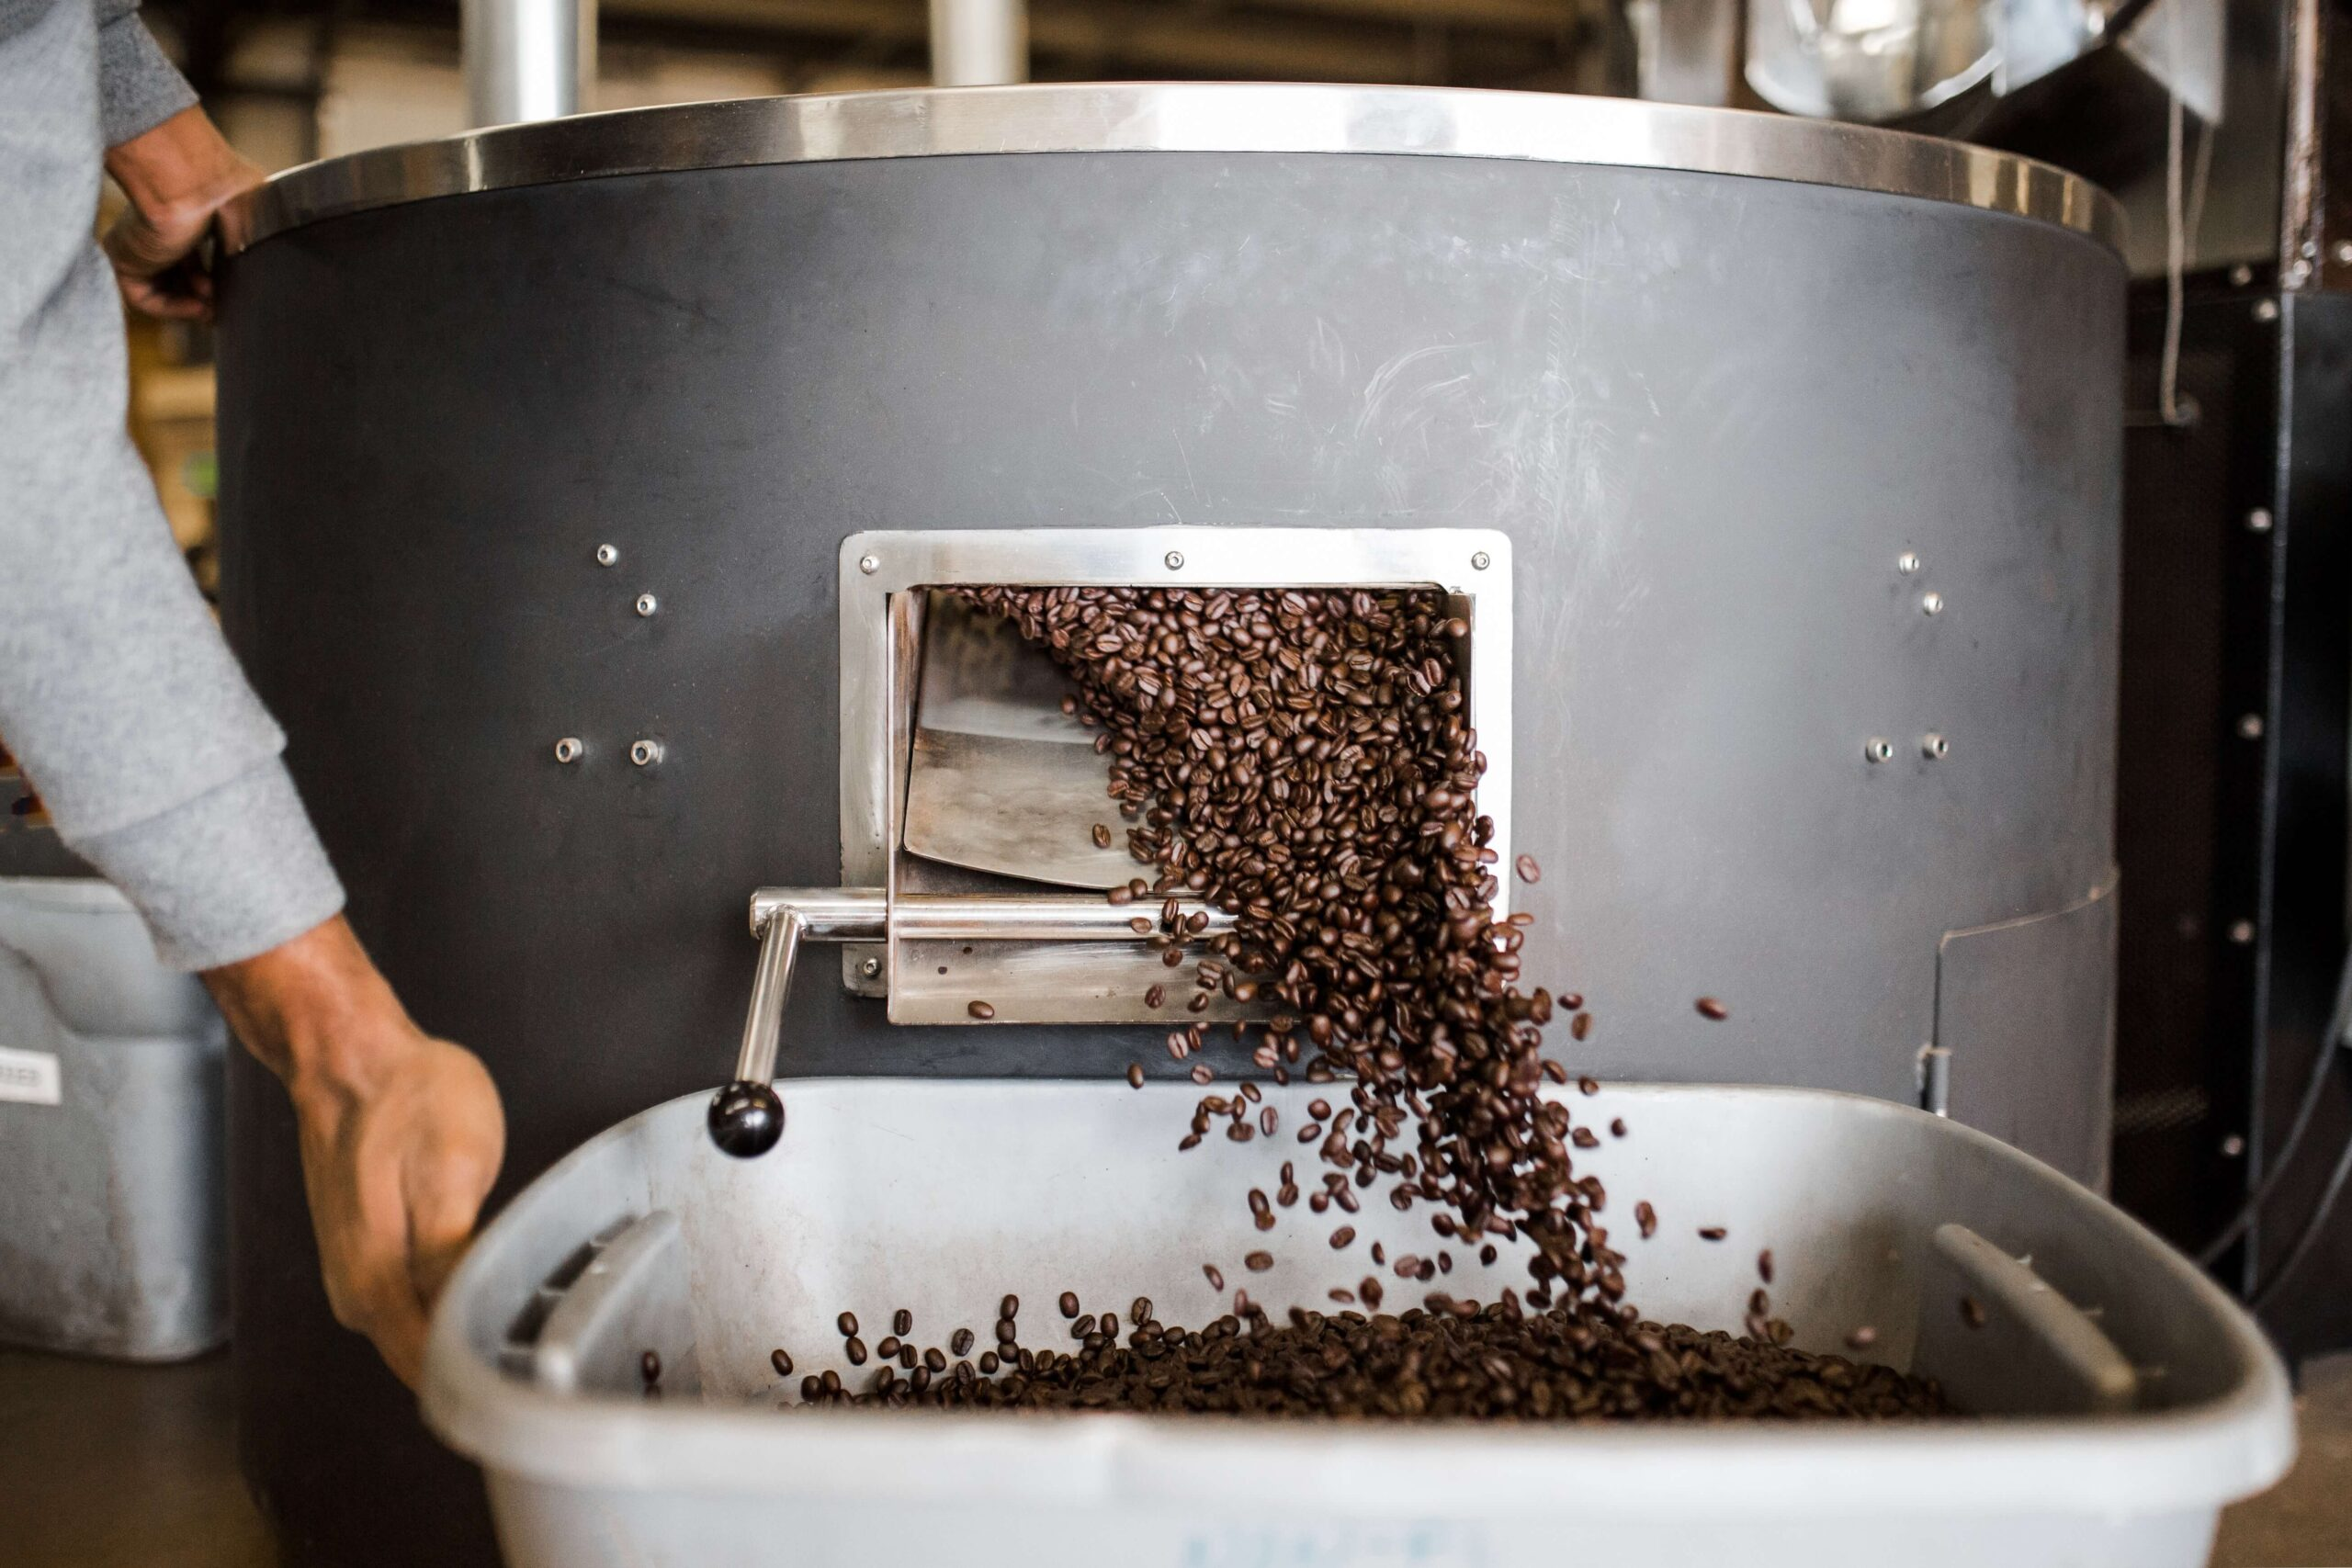 How does coffee roast affect the flavour?